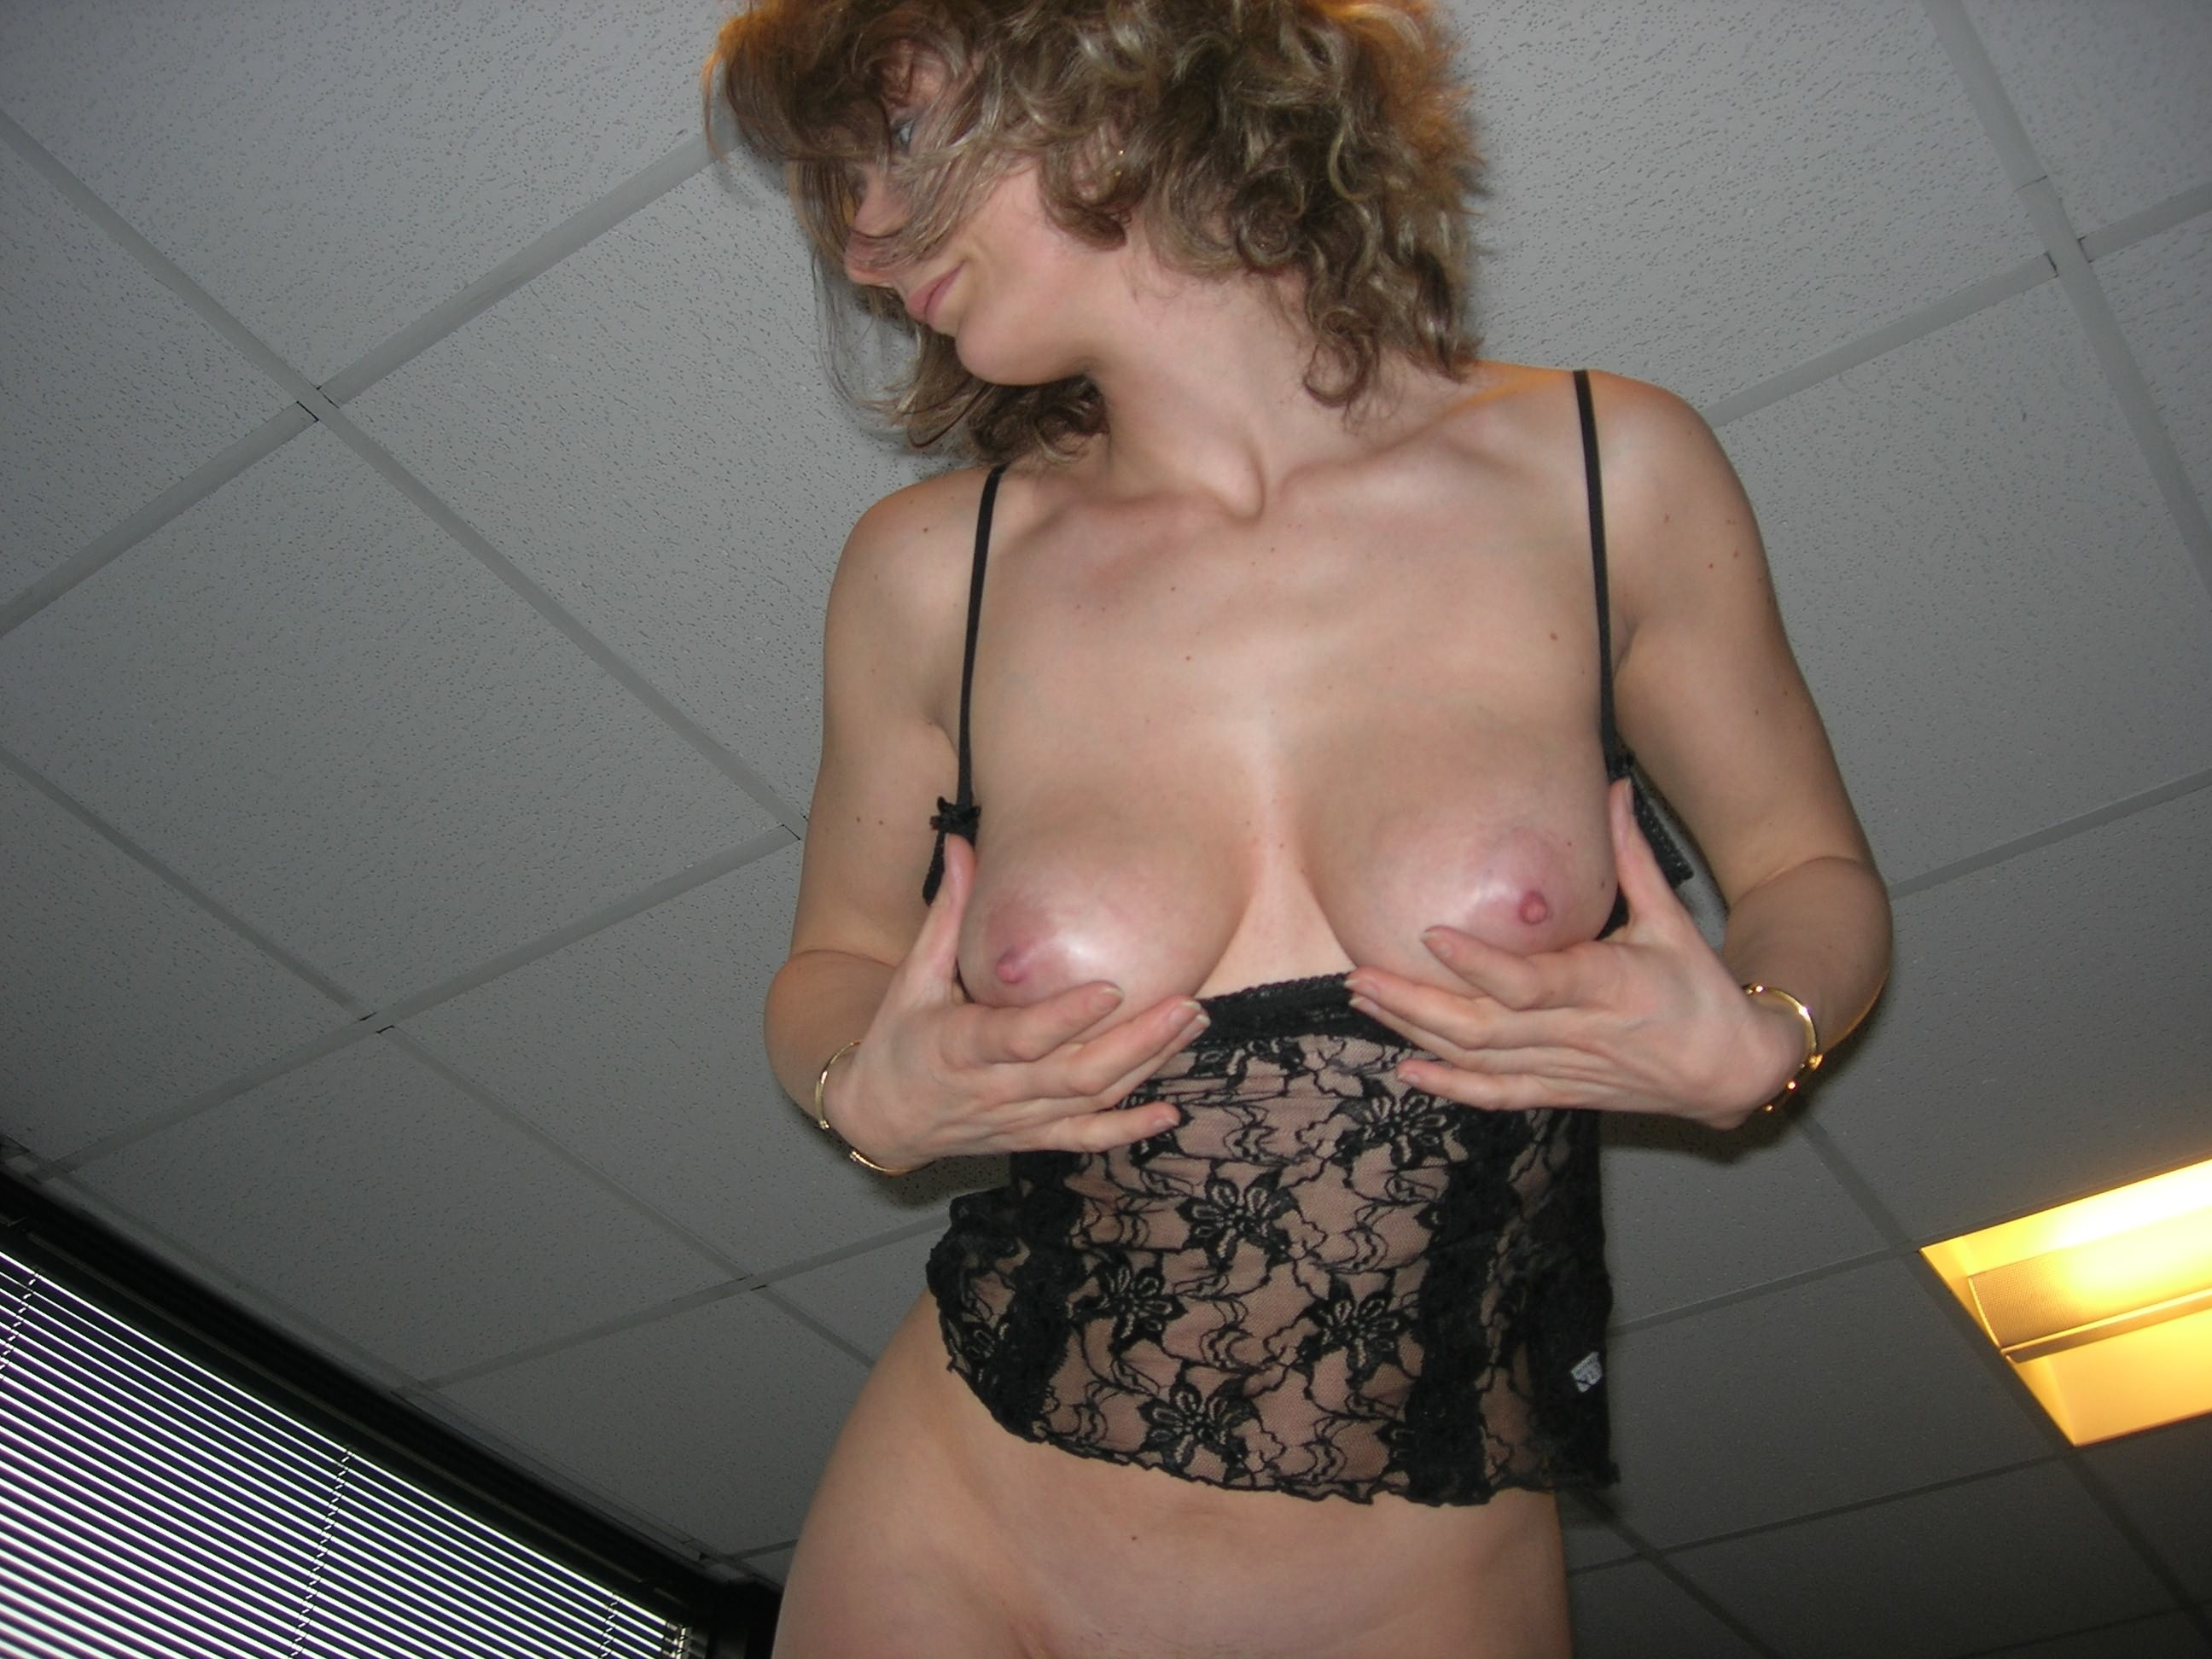 Girls flashing boobs at work tumblr